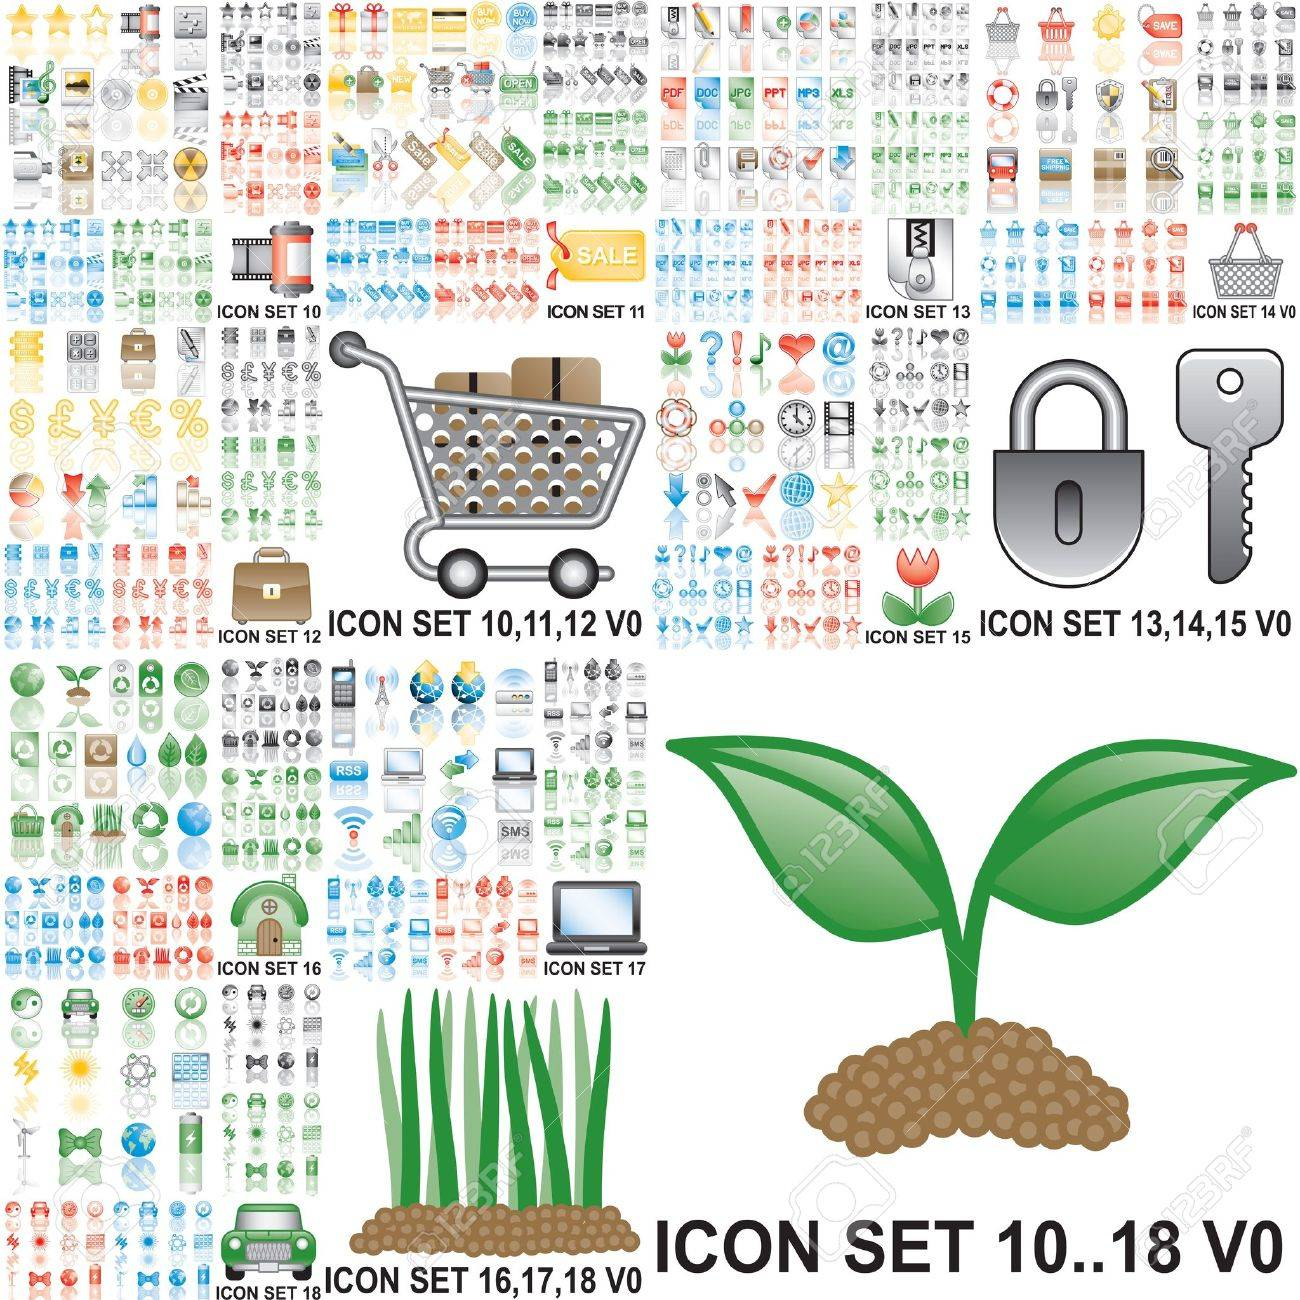 Over 150 icons. Set 10..18. Variant in black, red, blue, green. Isolated groups and layers. Stock Photo - 7436450